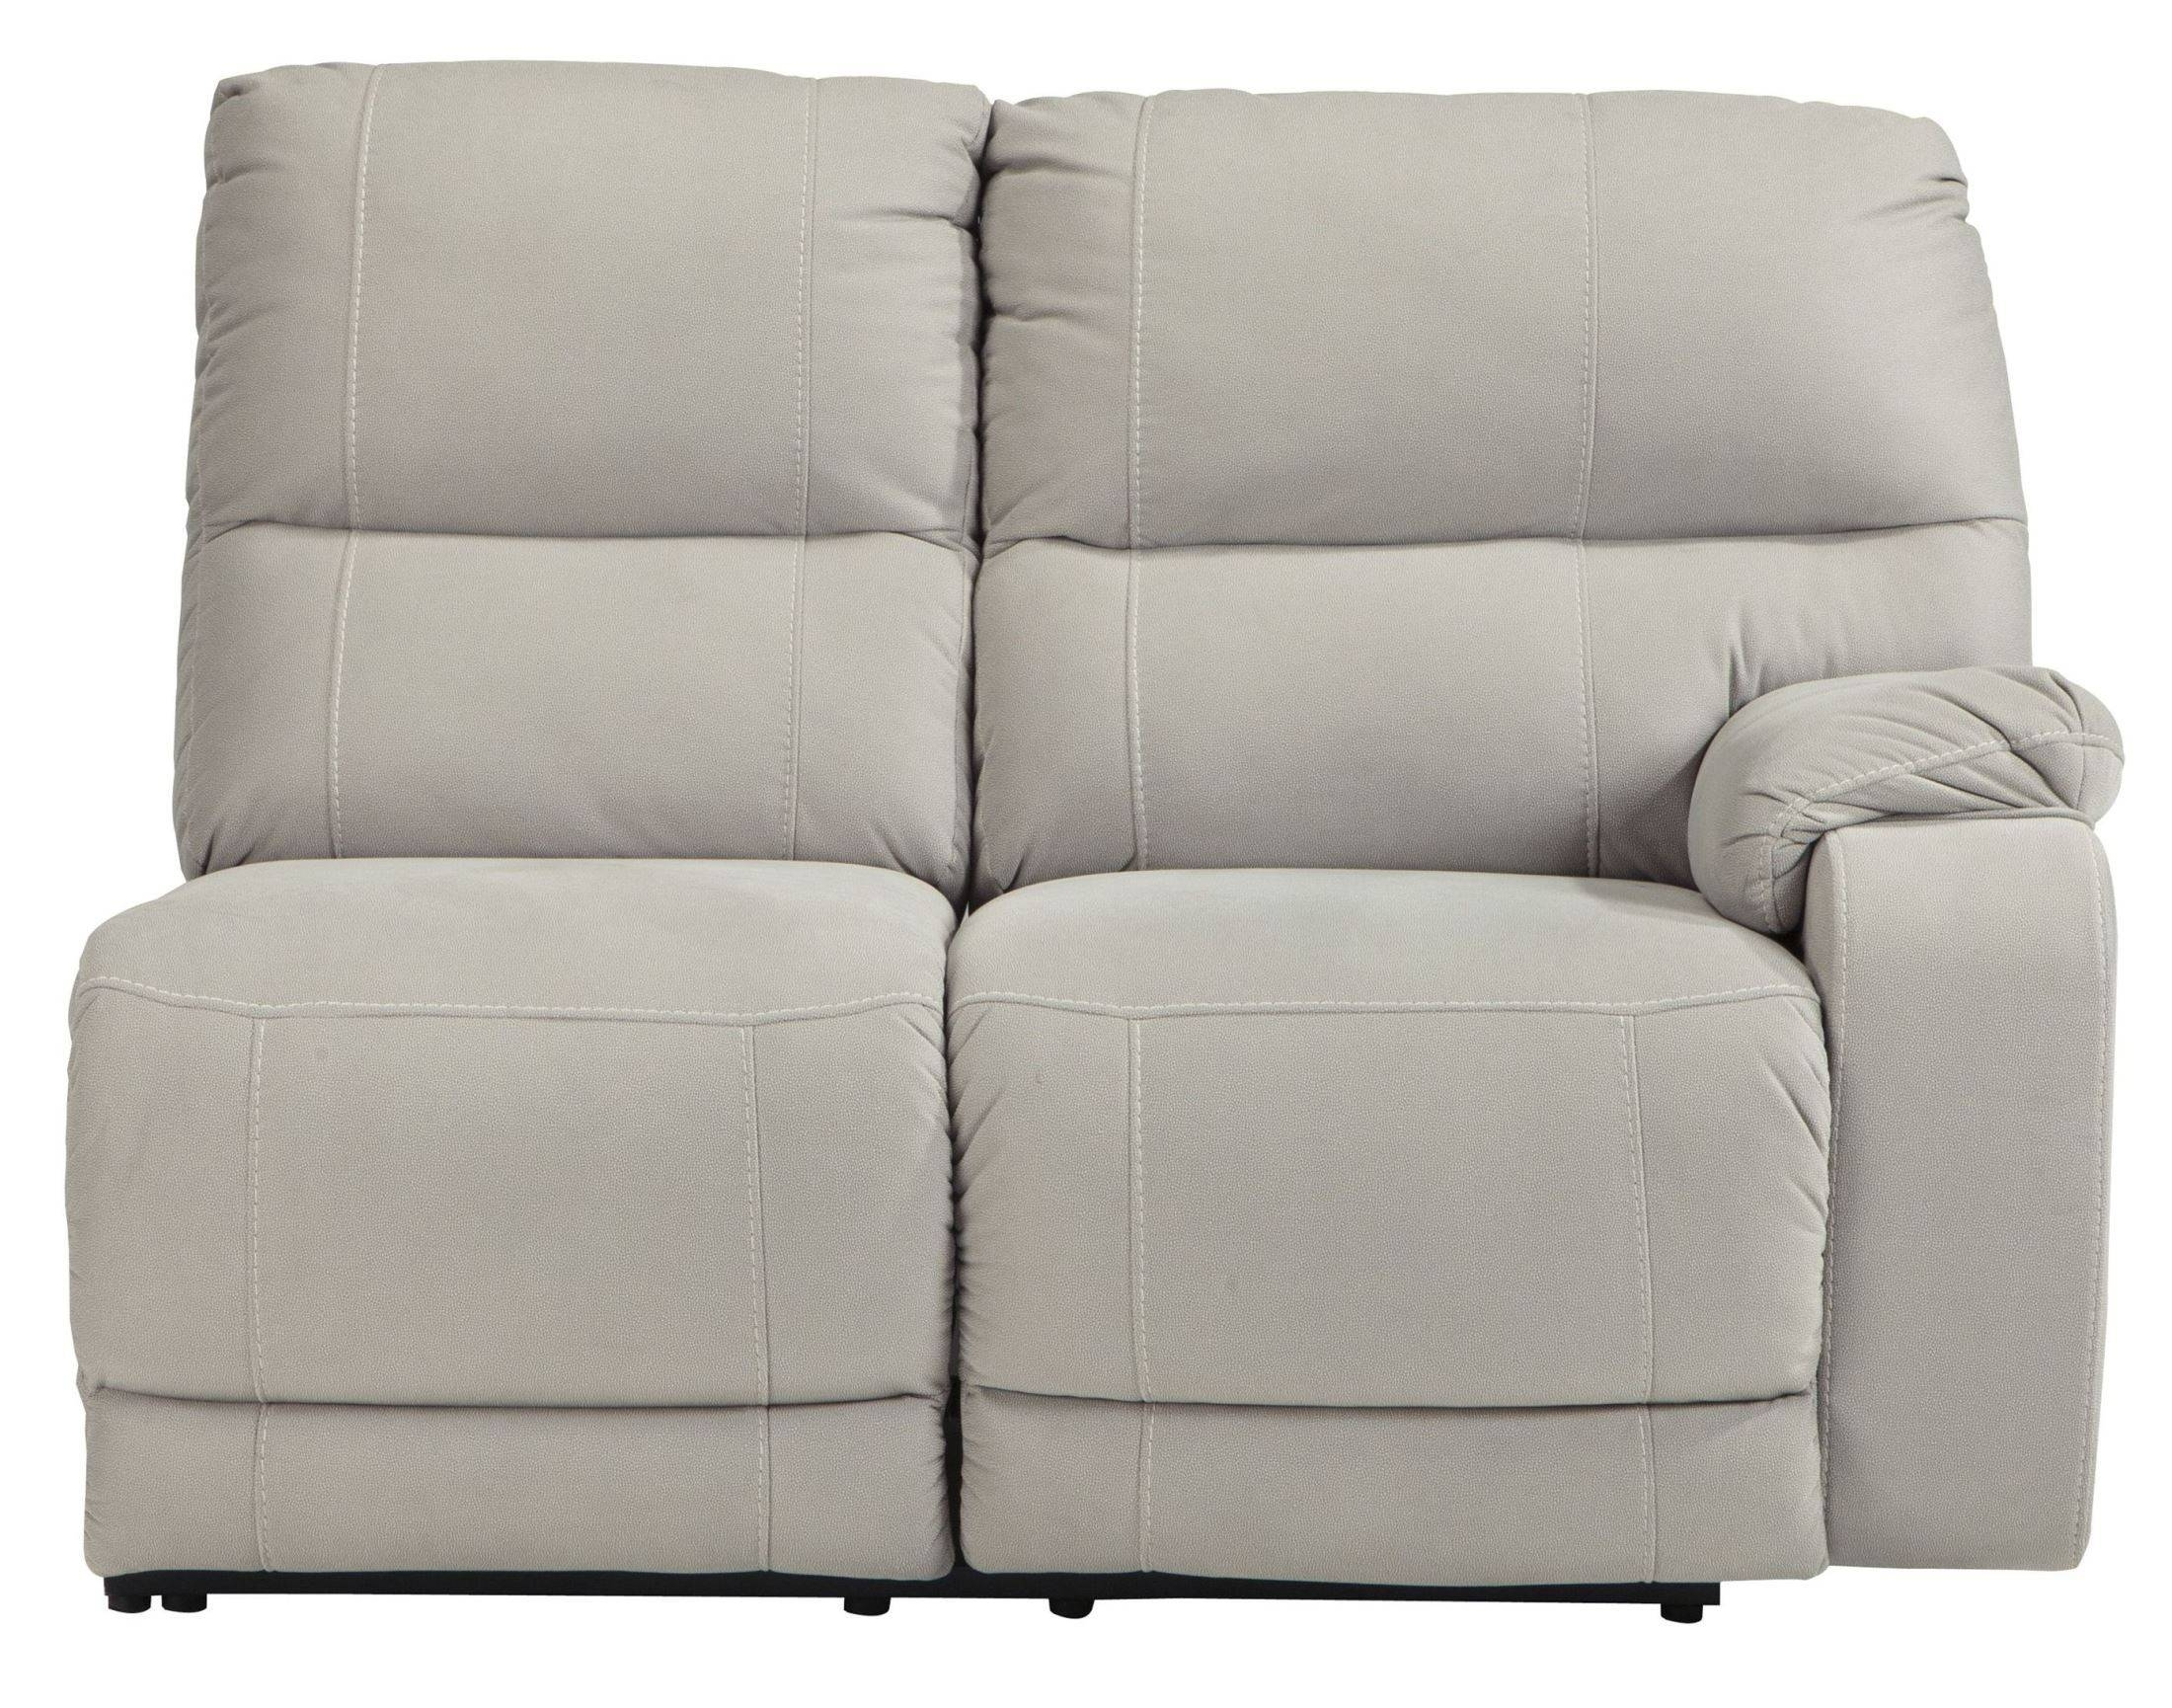 Sofas Center : Carlyle Sofa Beds Shop Reviews Shopcarlisle Regarding Carlyle Sofa Beds (View 10 of 15)